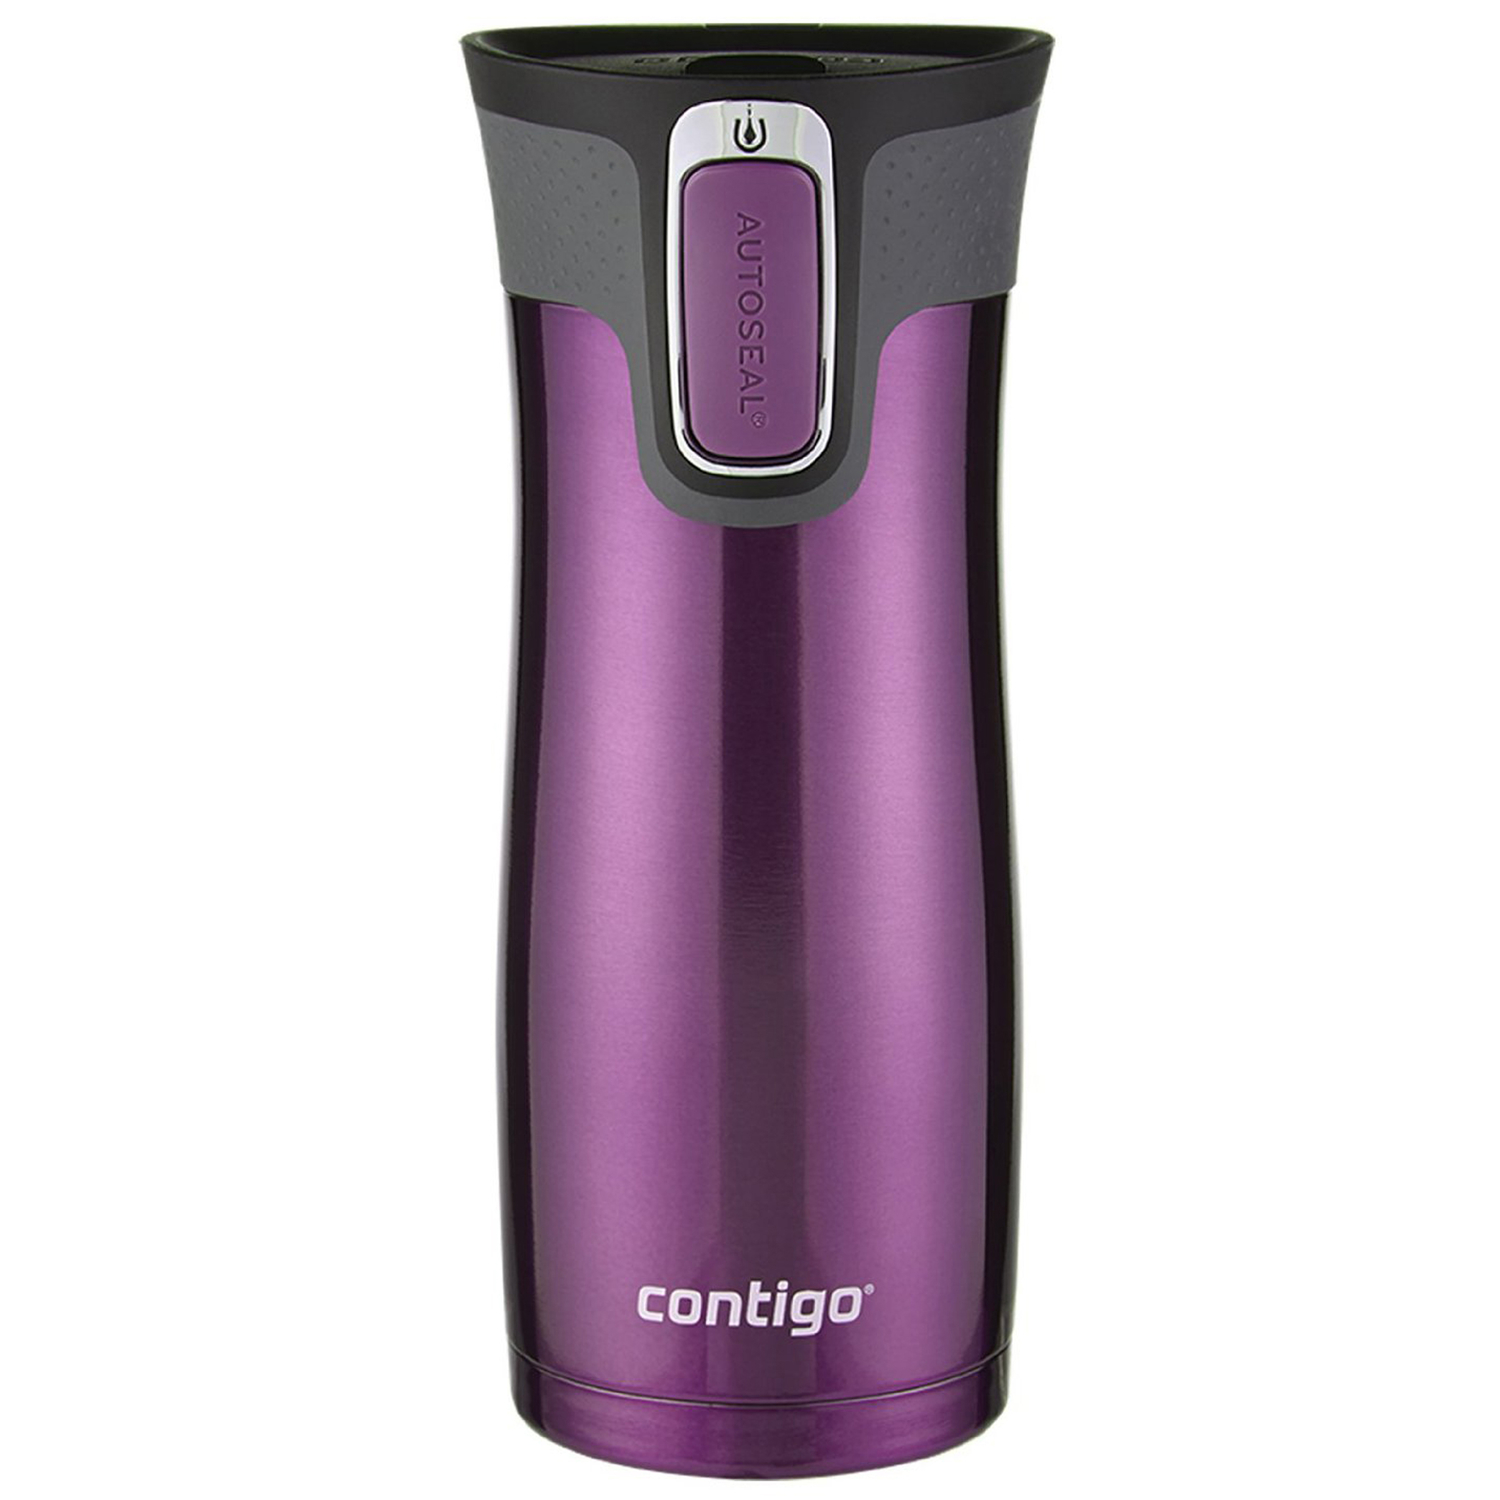 Contigo  Autoseal West Loop  Radiant Orchid  Stainless Steel  Tumbler  Travel Mug  16 oz. BPA Free